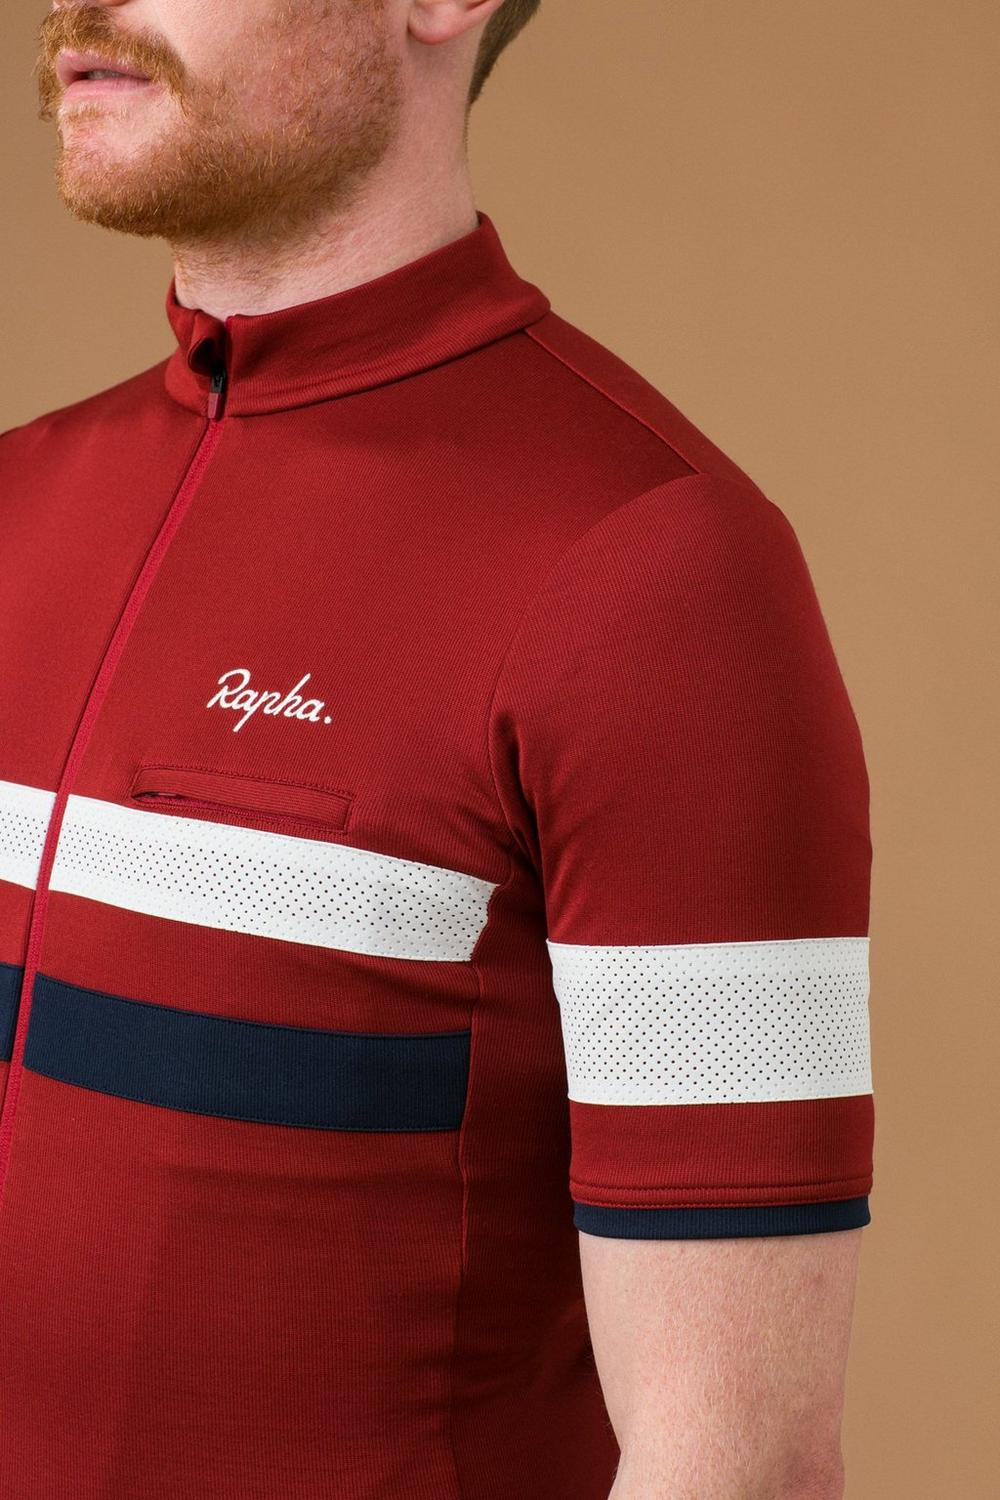 Rapha Brevet Collection mens cycling jerseys merino cycling jersey